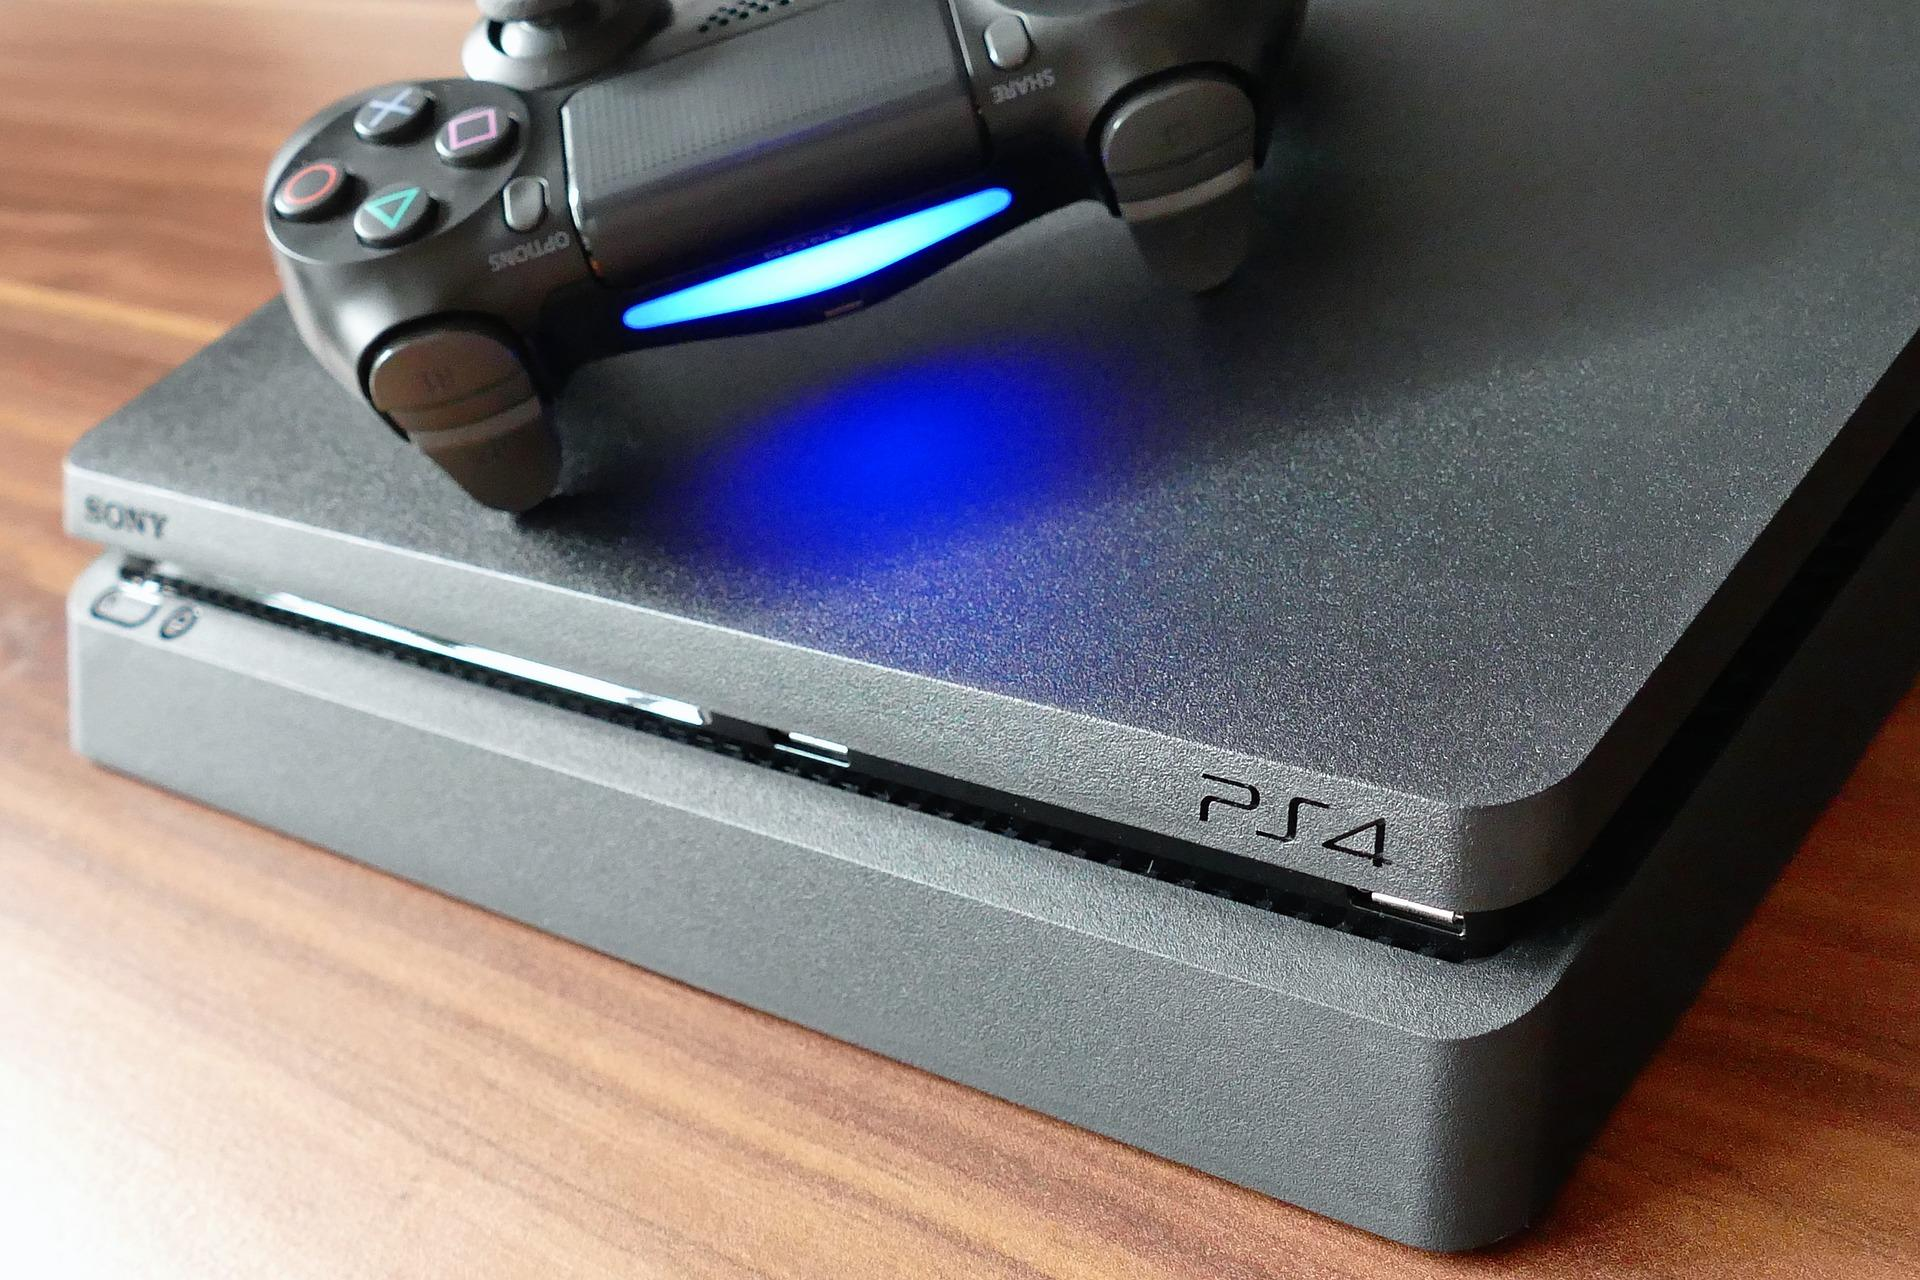 Playstation 5 Specs Sony Adds Best Feature To Ps5 To Improve Gameplay